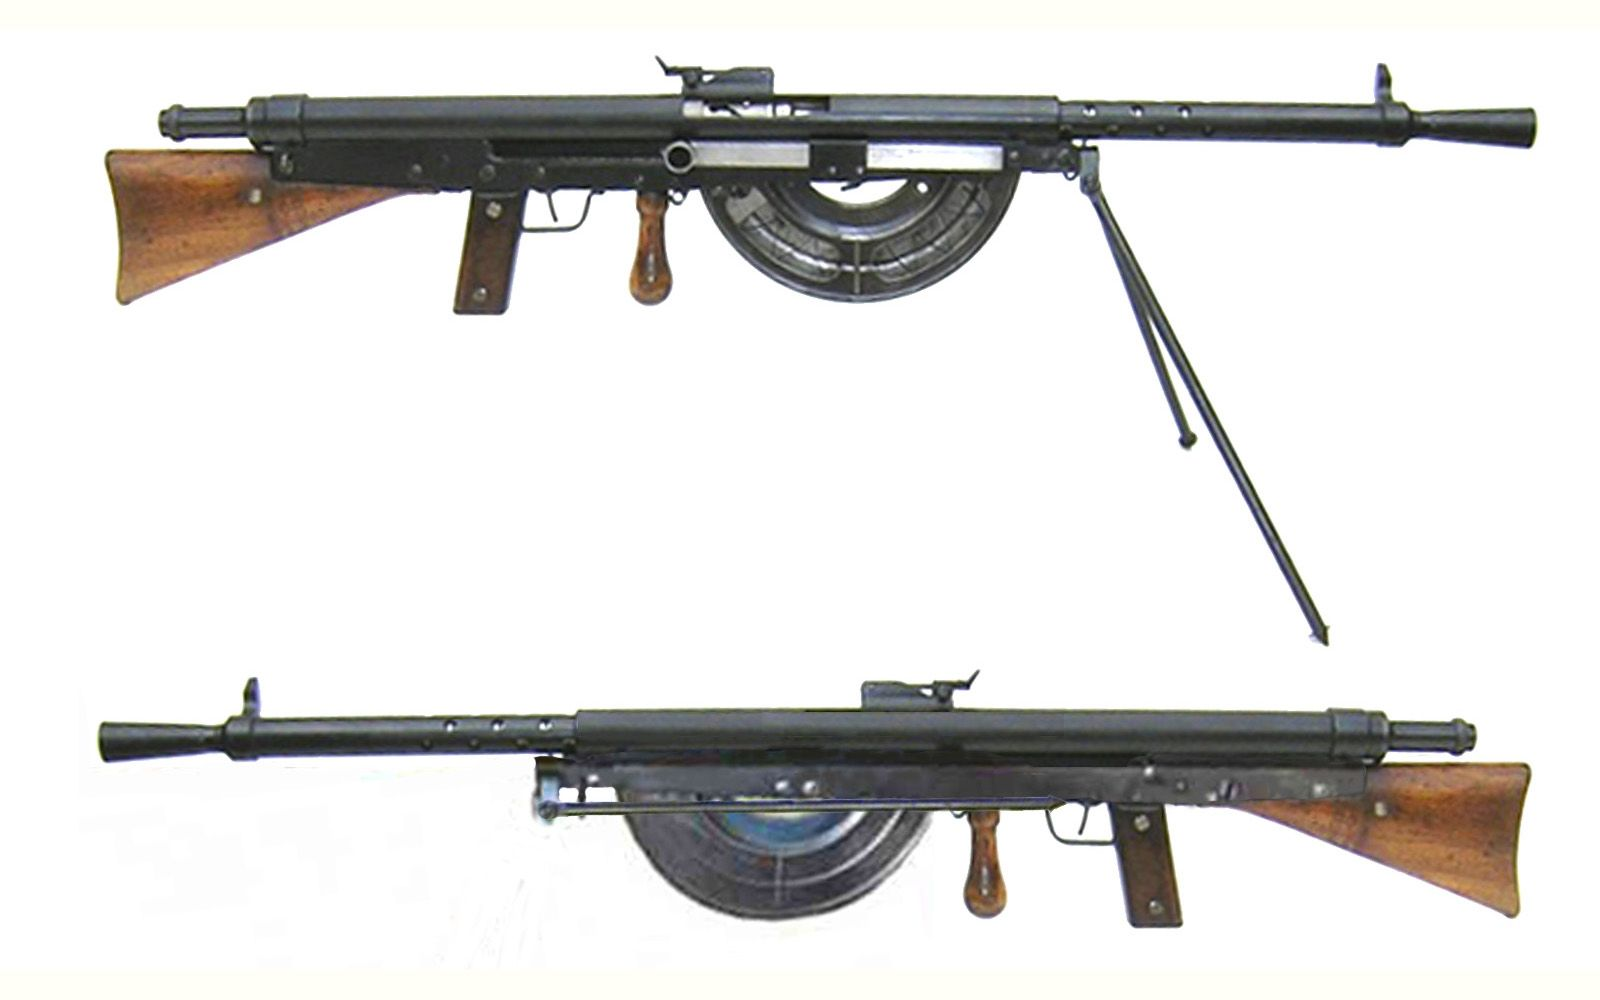 Fusil Mitrailleur Modele 1915 (Chauchat) - France - produced 1915-1922 Caliber 8…